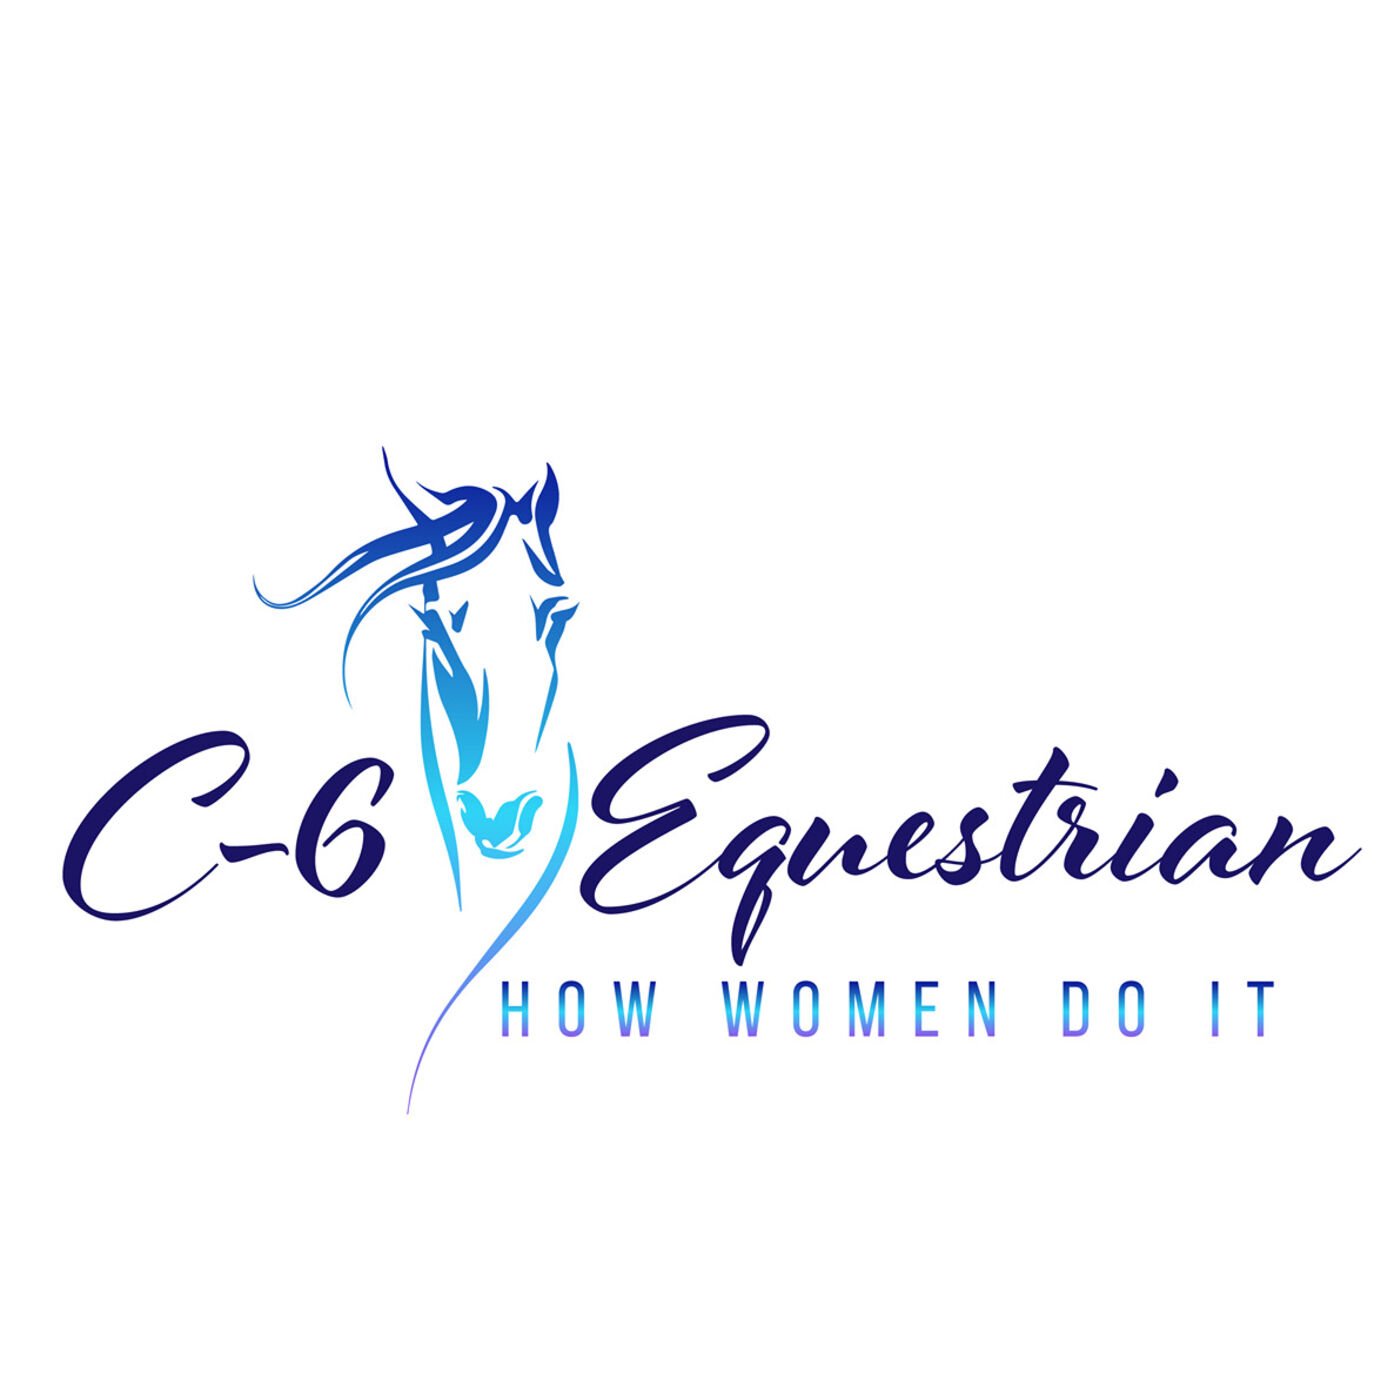 "#145 C-6 Equestrian ""How Women do it"""